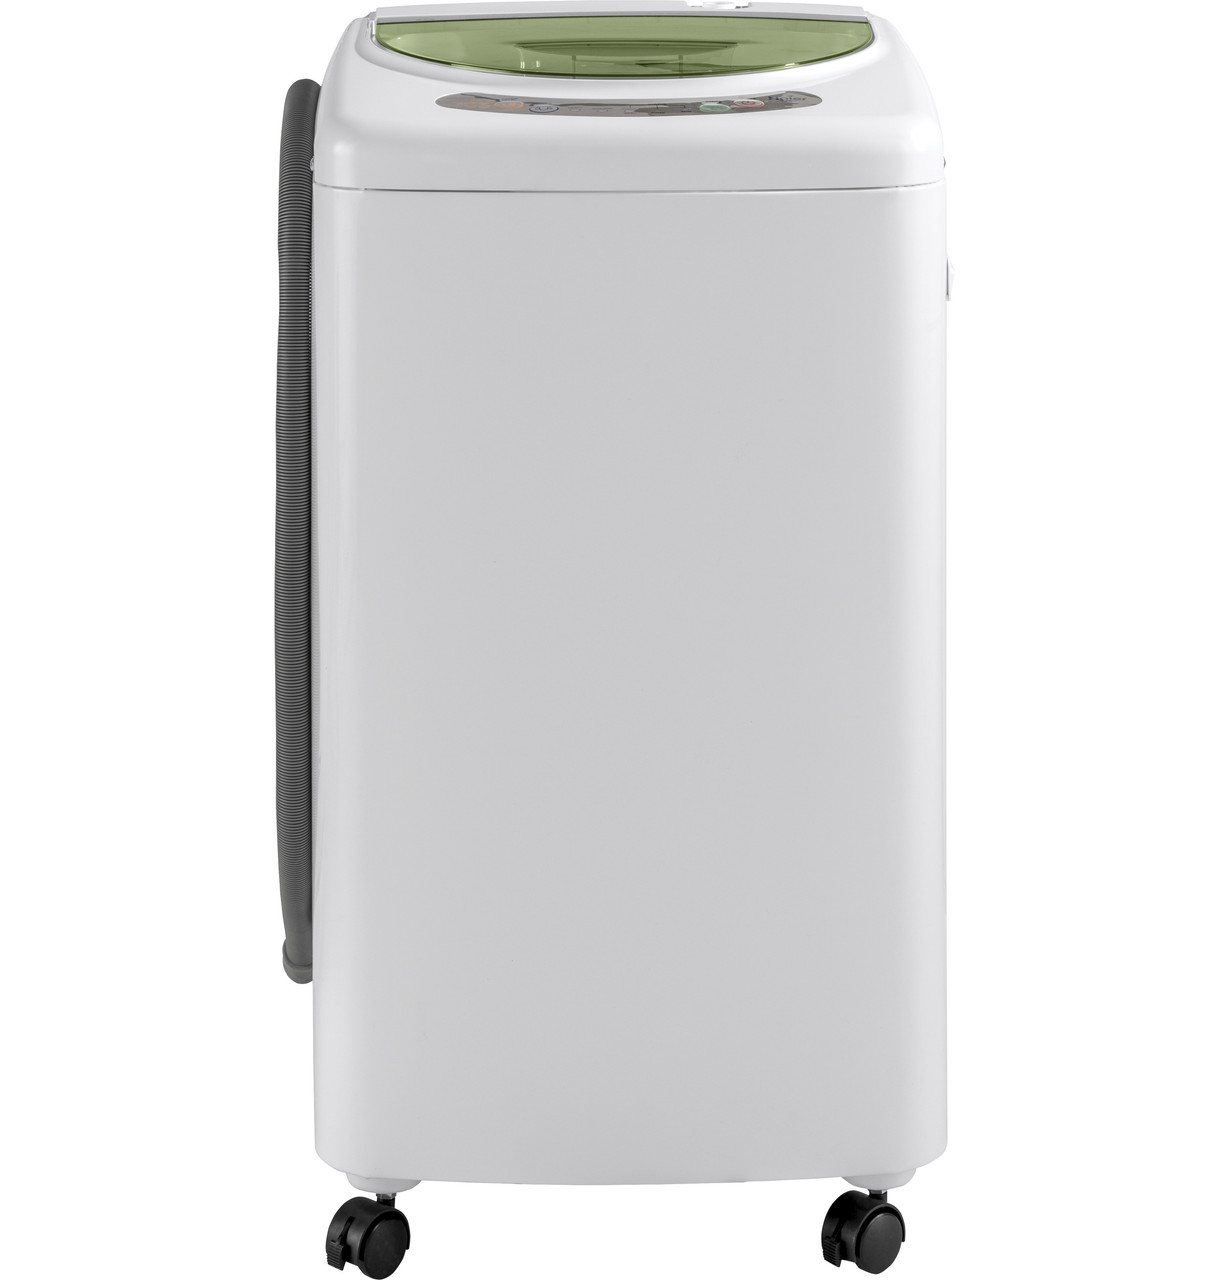 1 0 cu ft portable washer hlp21n